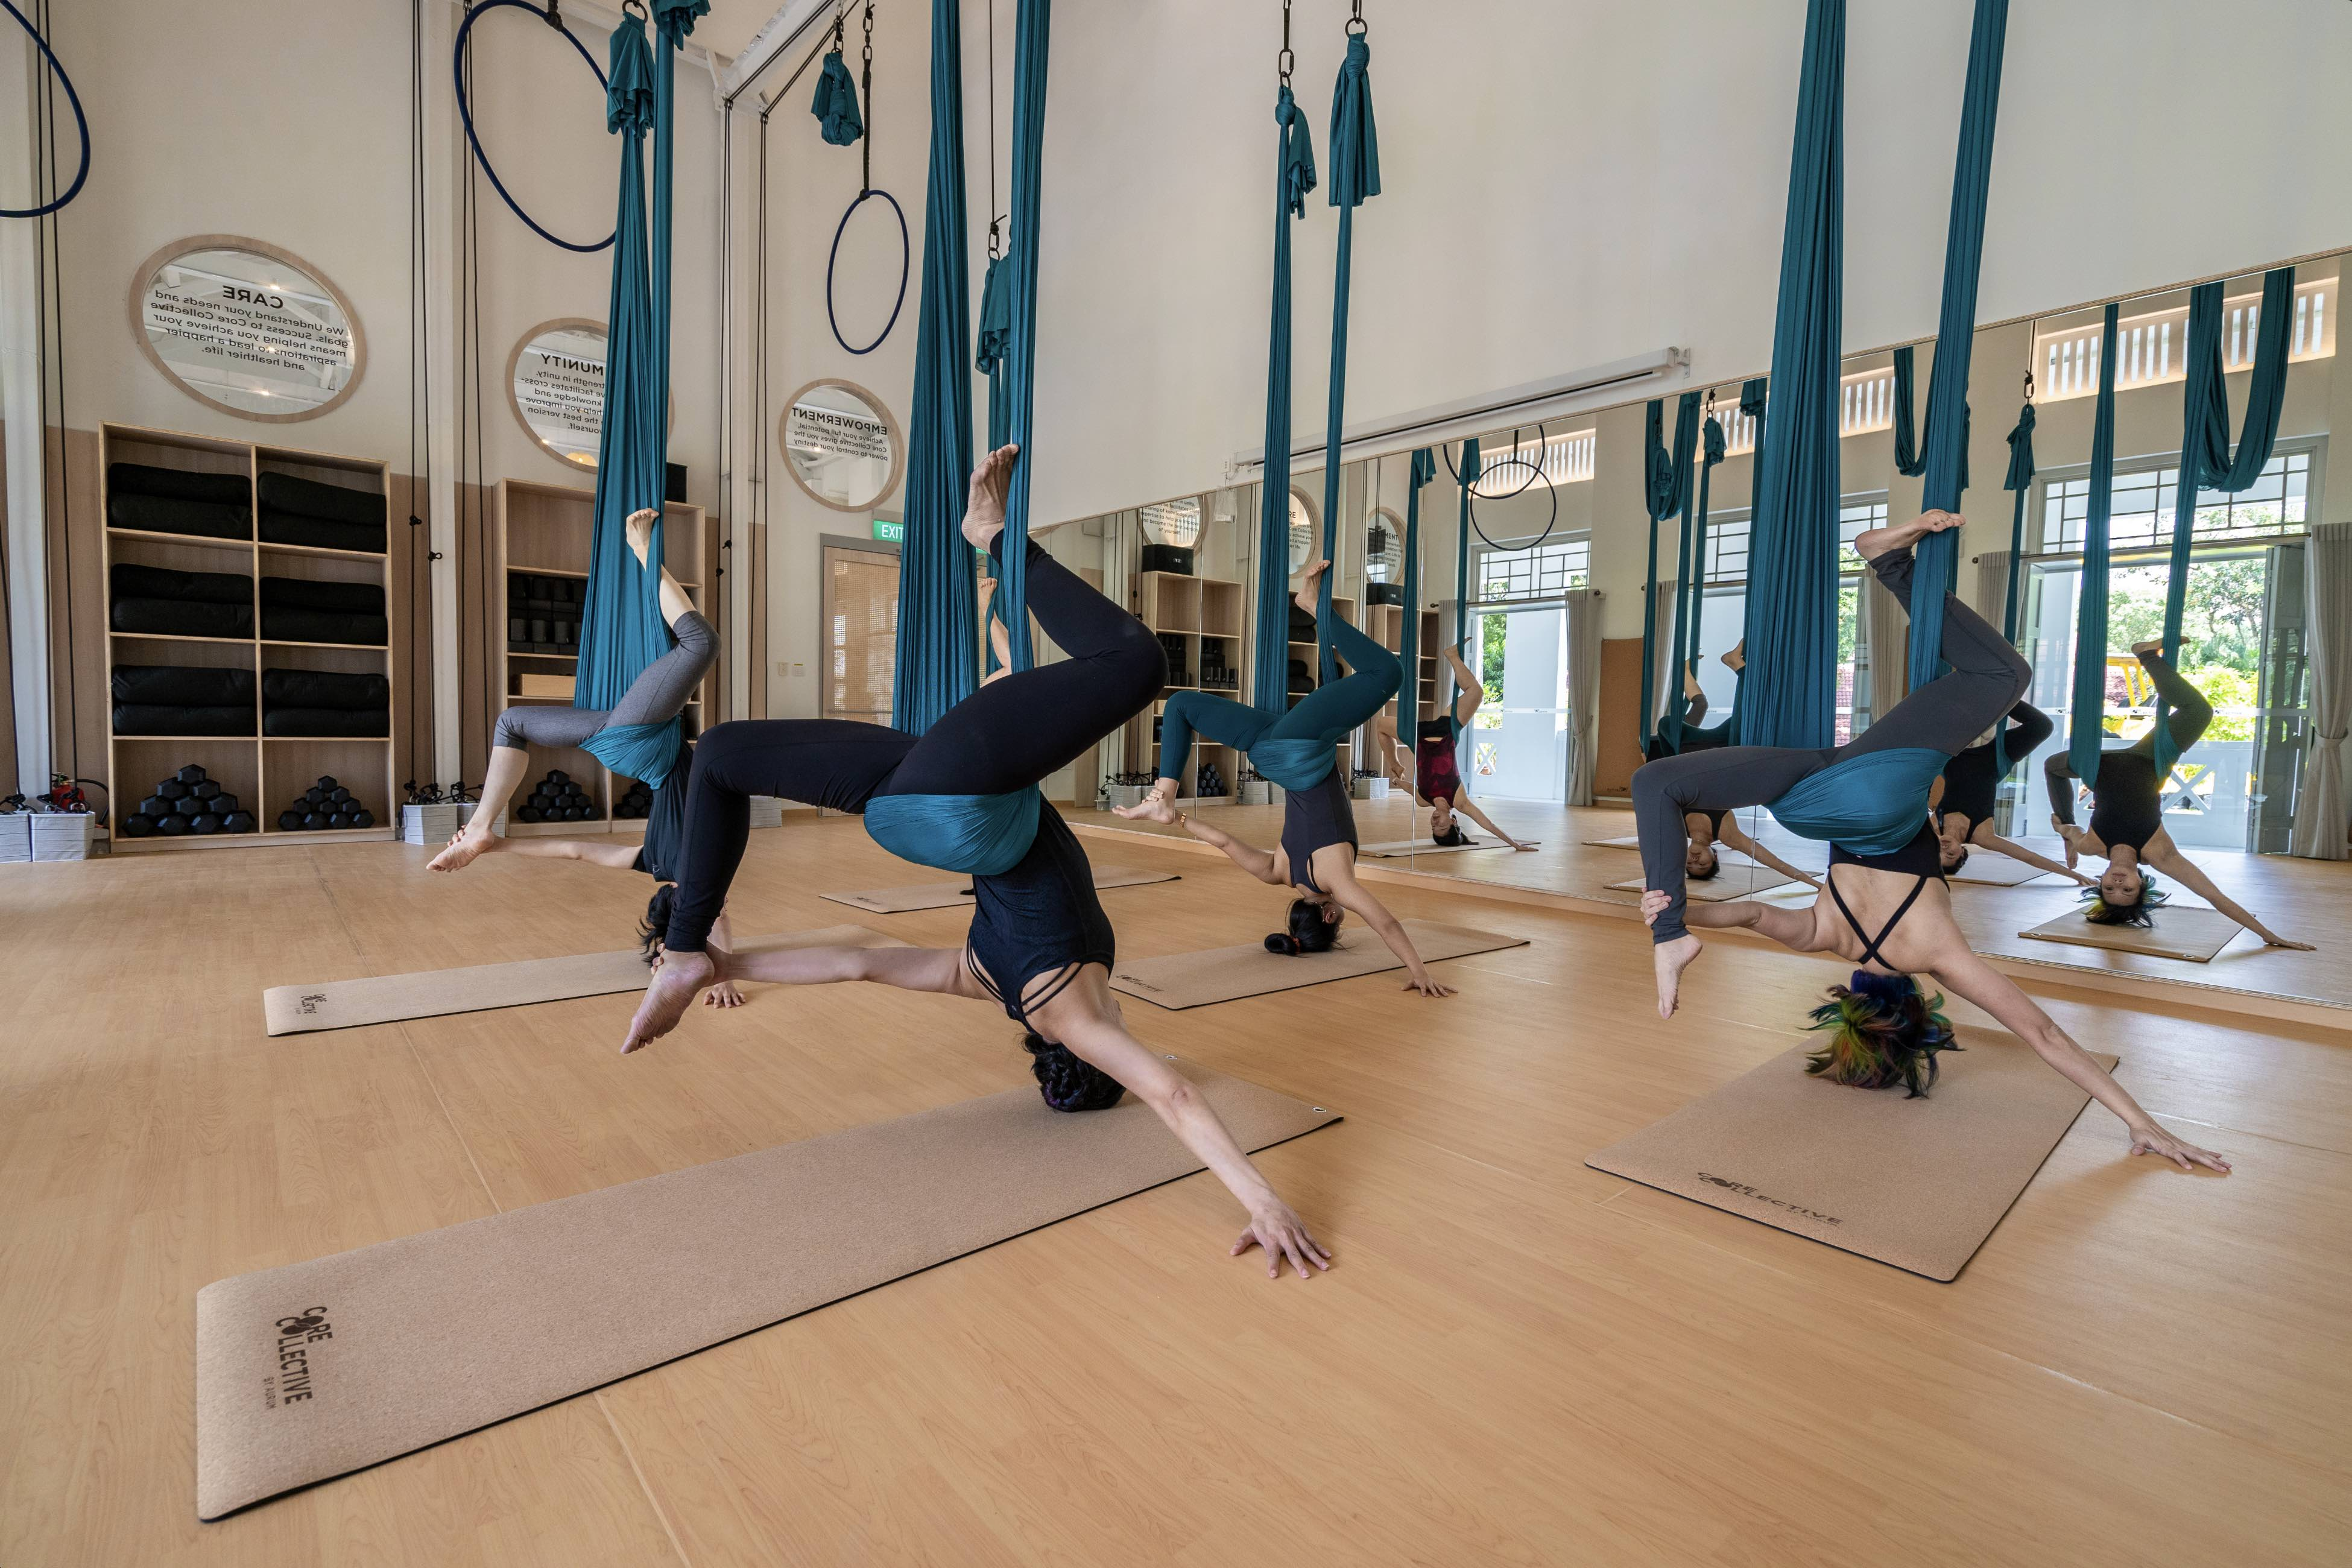 STB and ClassPass team up to promote Singapore's urban wellness experiences